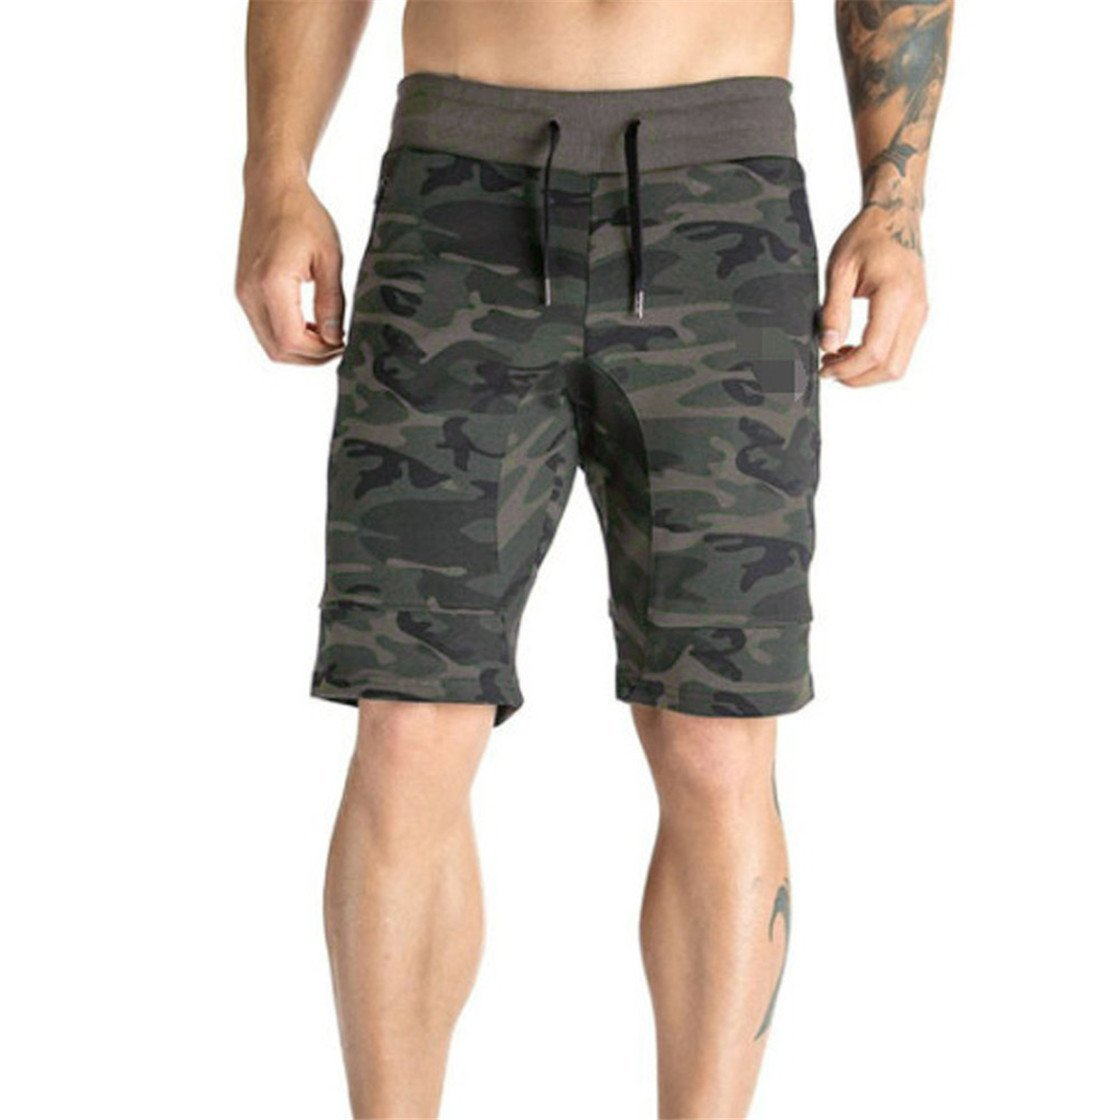 MOSE Short Pants For Men, Men's Summer Zipper Pocket Casual Elastic Muscle Fitness Camo Harem Training Jogger Thin Section Fashion Sport Short Pants New (Army Green, M)